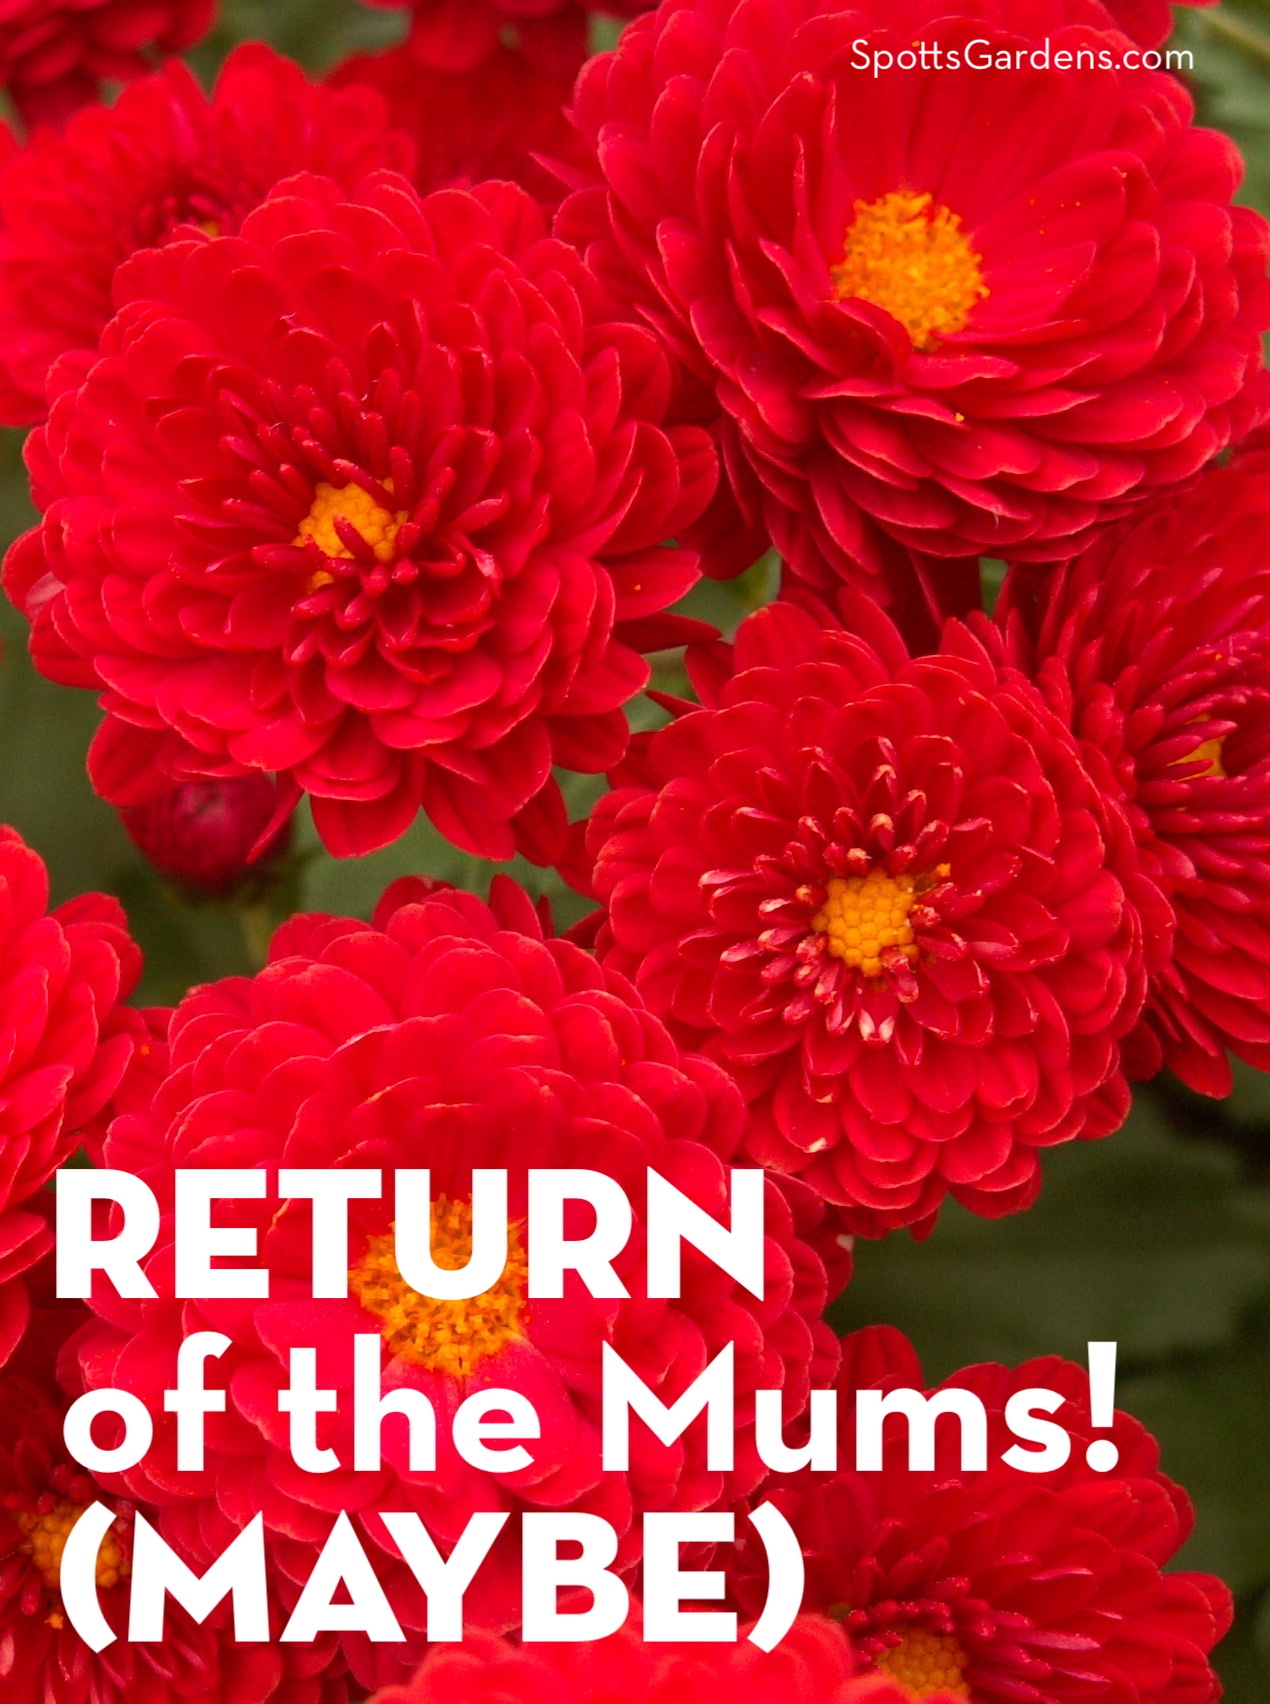 Return of the Mums! (Maybe)